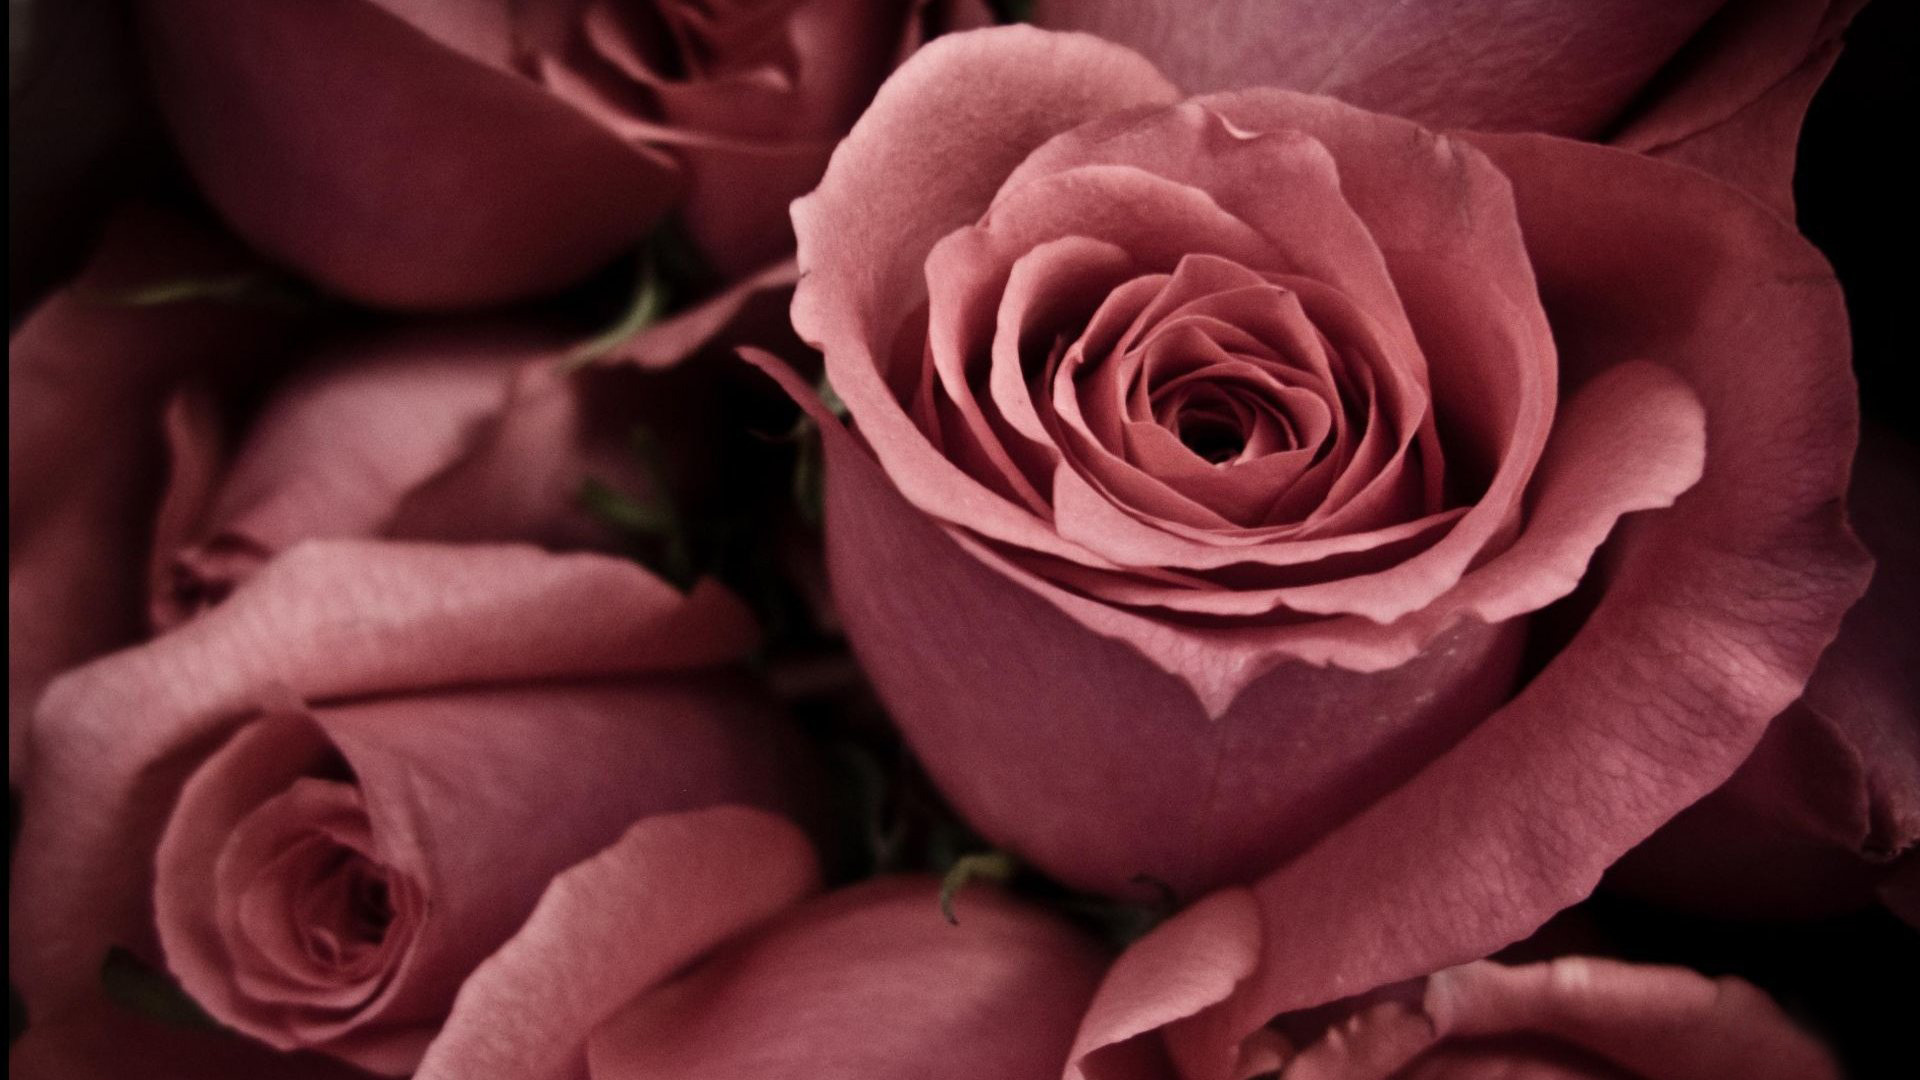 beautiful roses wallpaper | download cool hd wallpapers here.